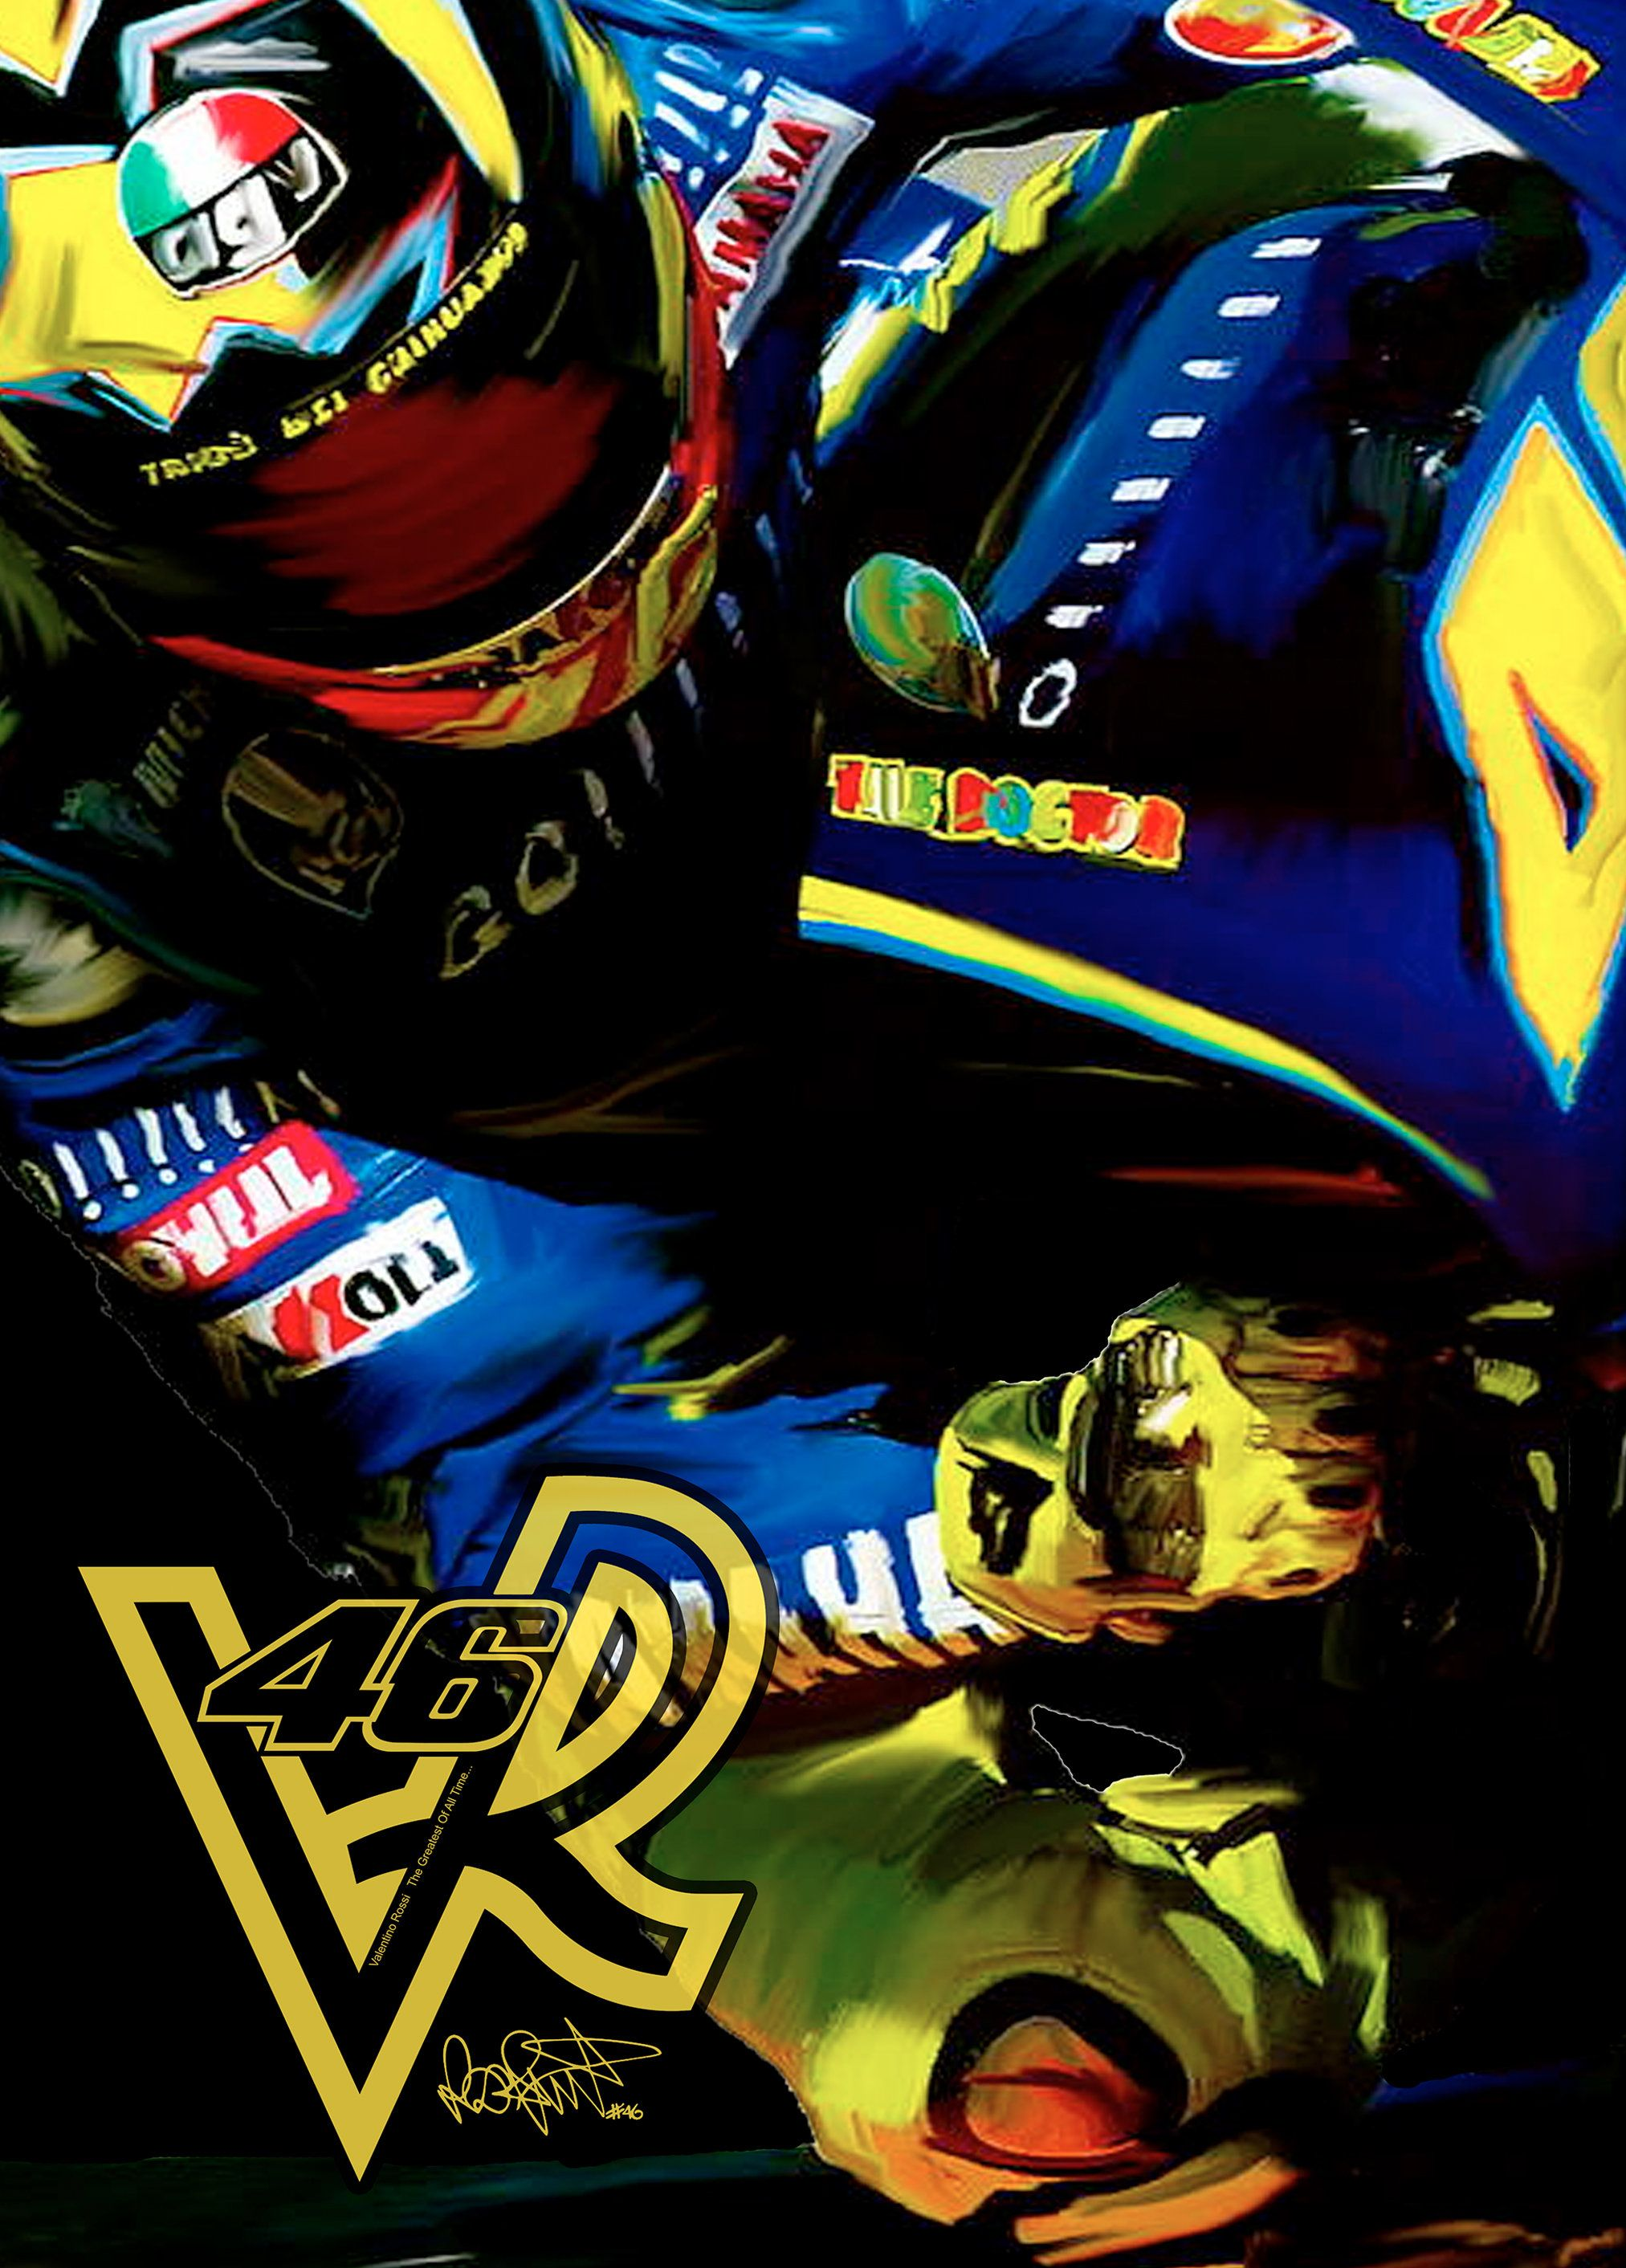 Marquez Vs Rossi Canvas Wall Art